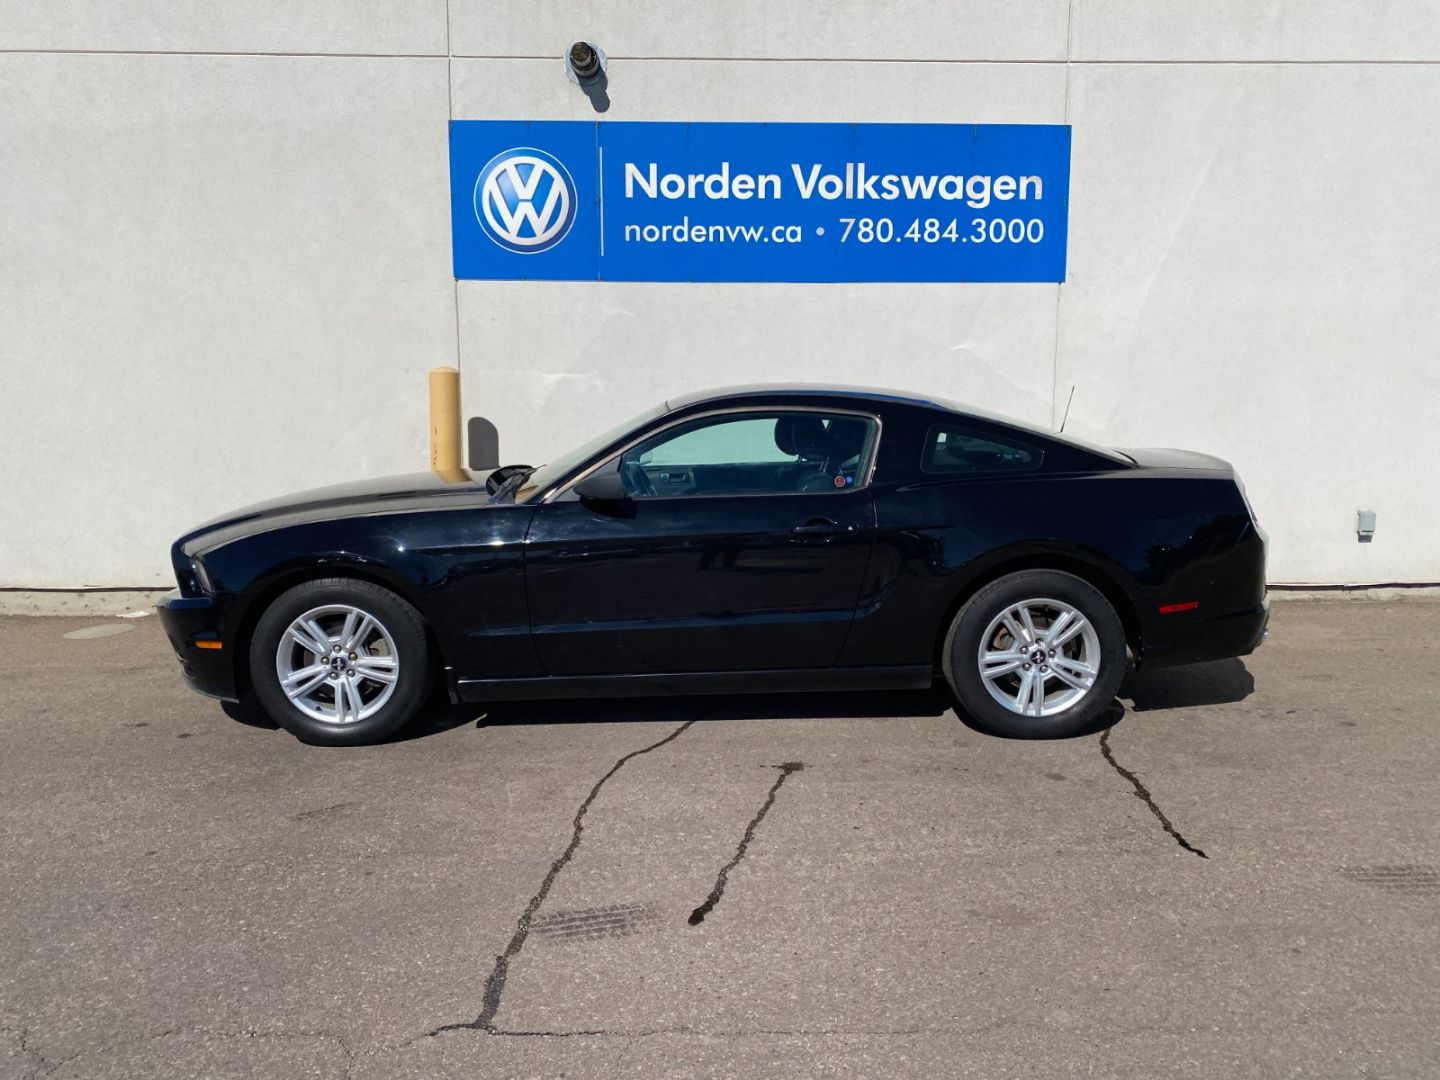 2014 Ford Mustang V6 for sale in Edmonton, Alberta